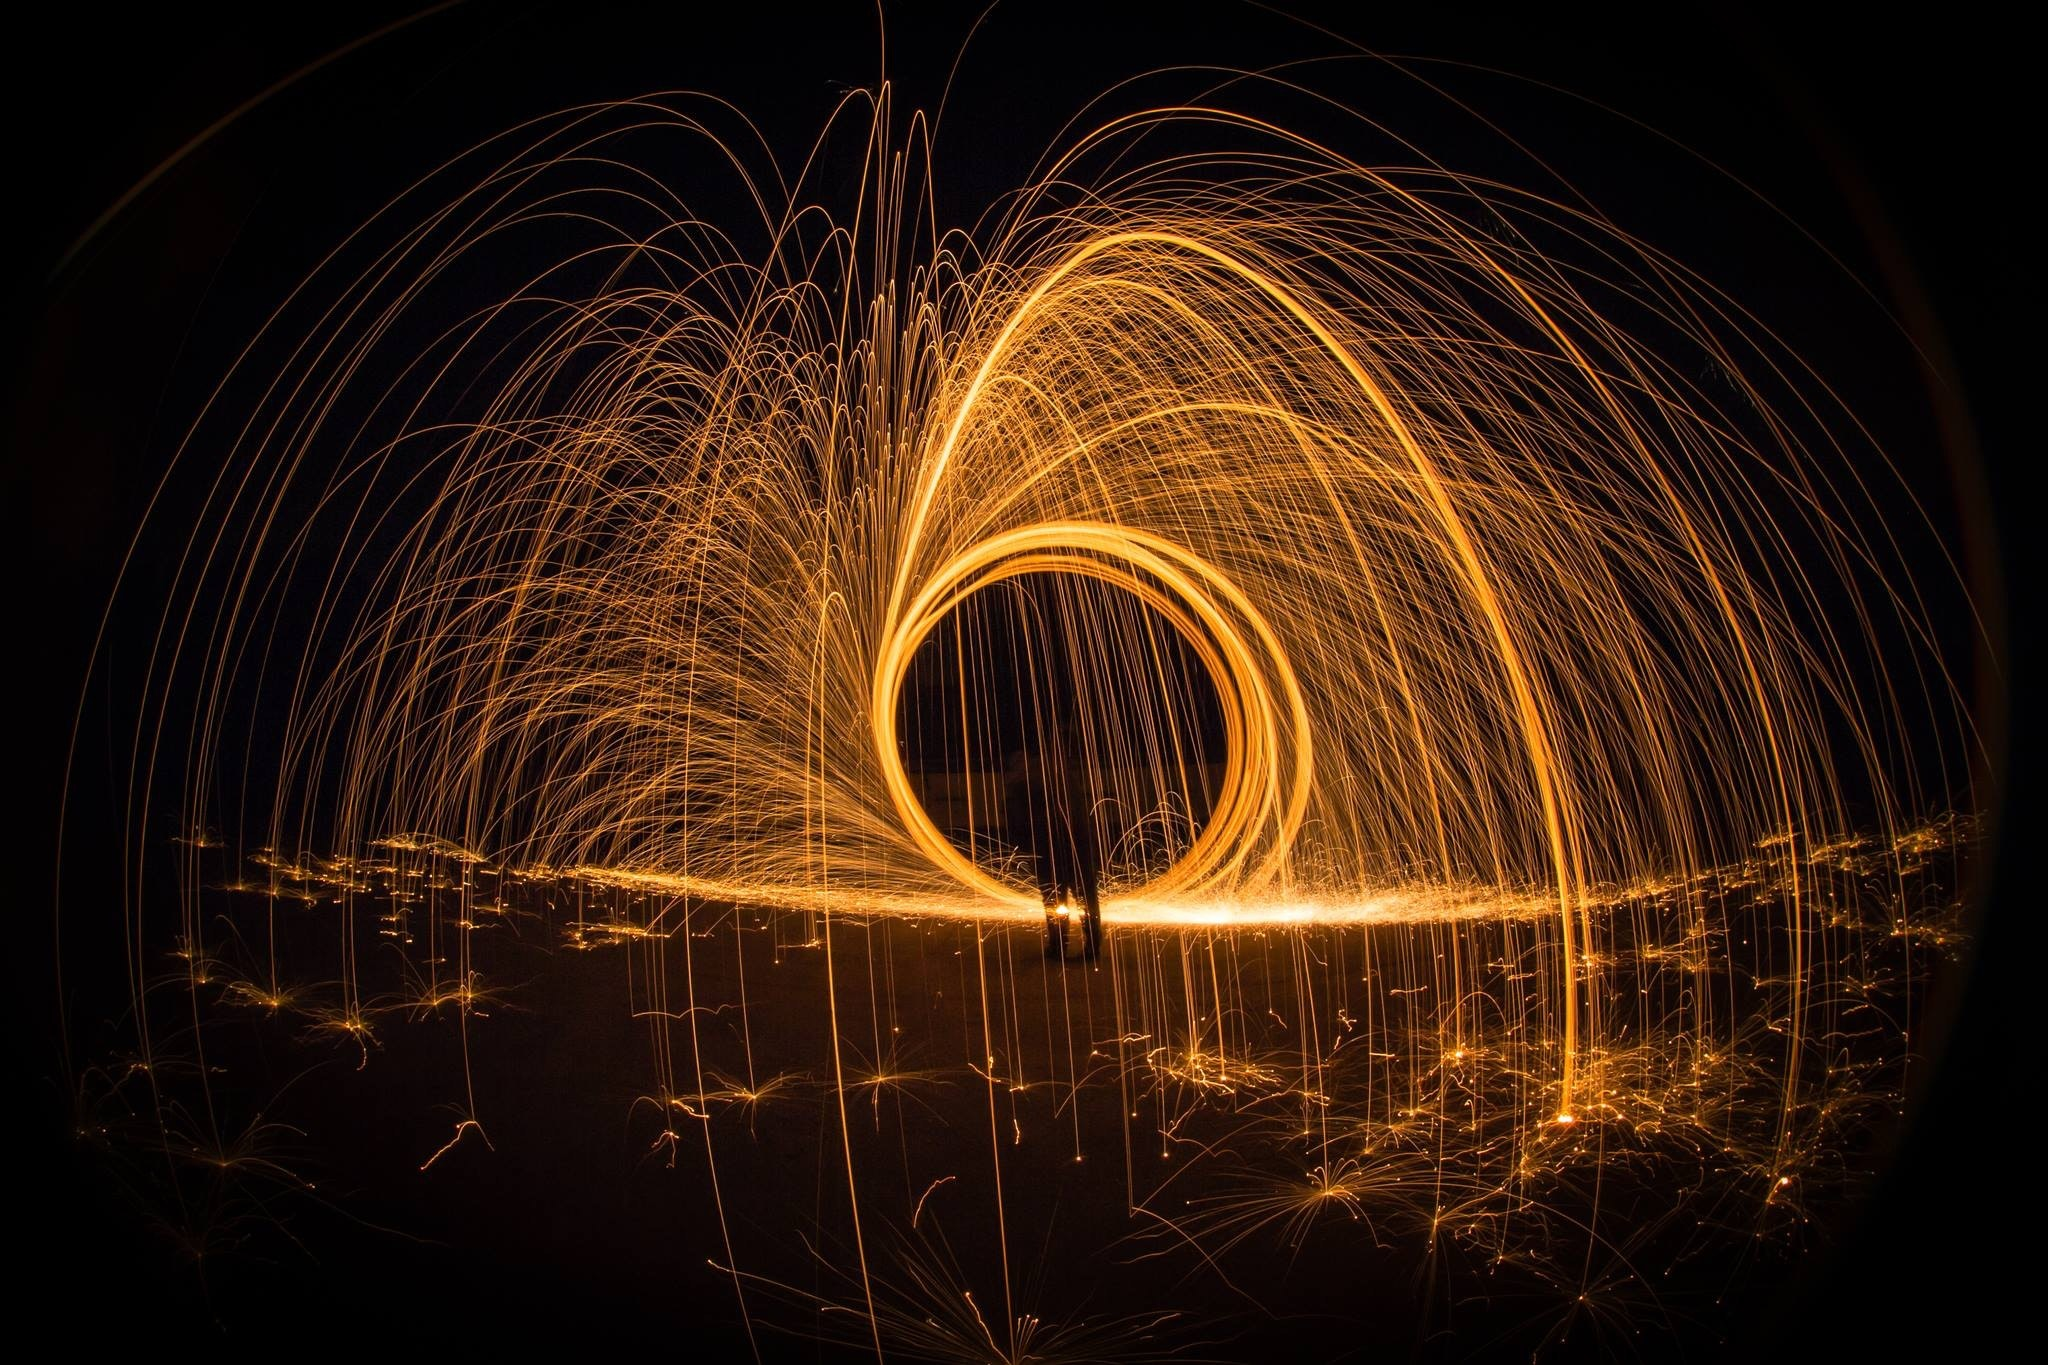 Light painting at night photo